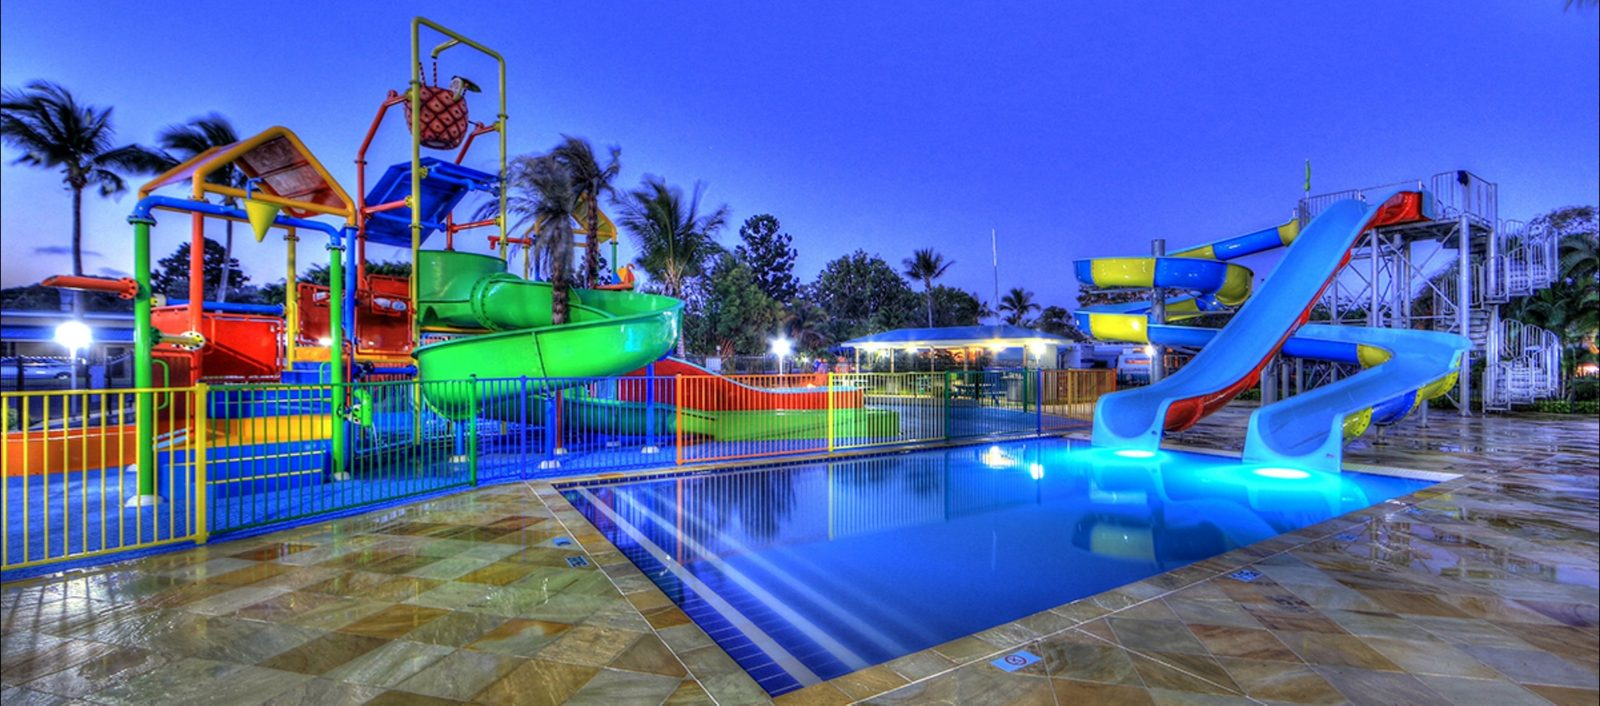 Water Park by Night